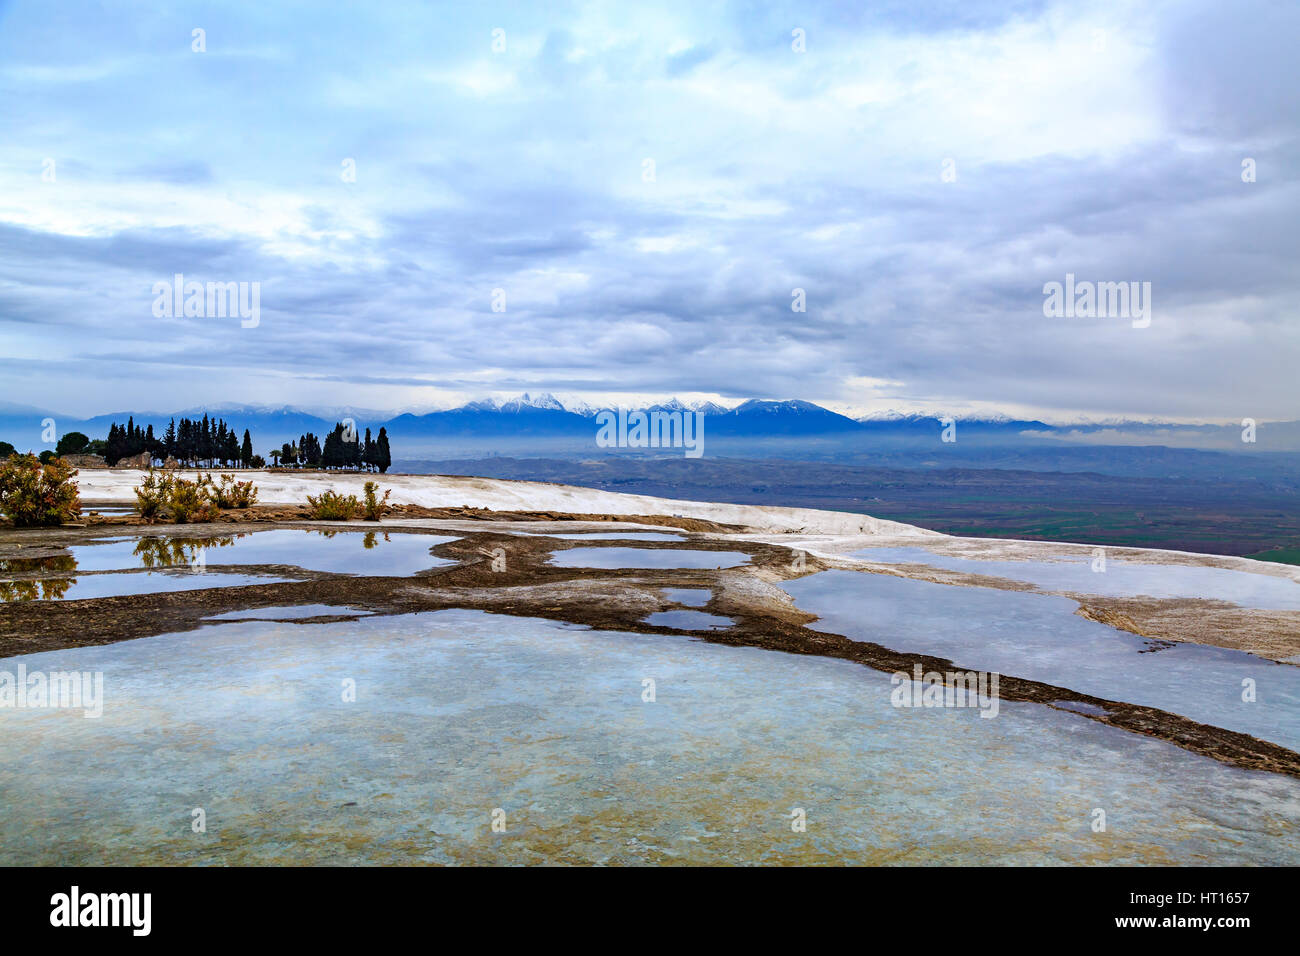 Colorful pamukkale travertines with mountains background - Stock Image